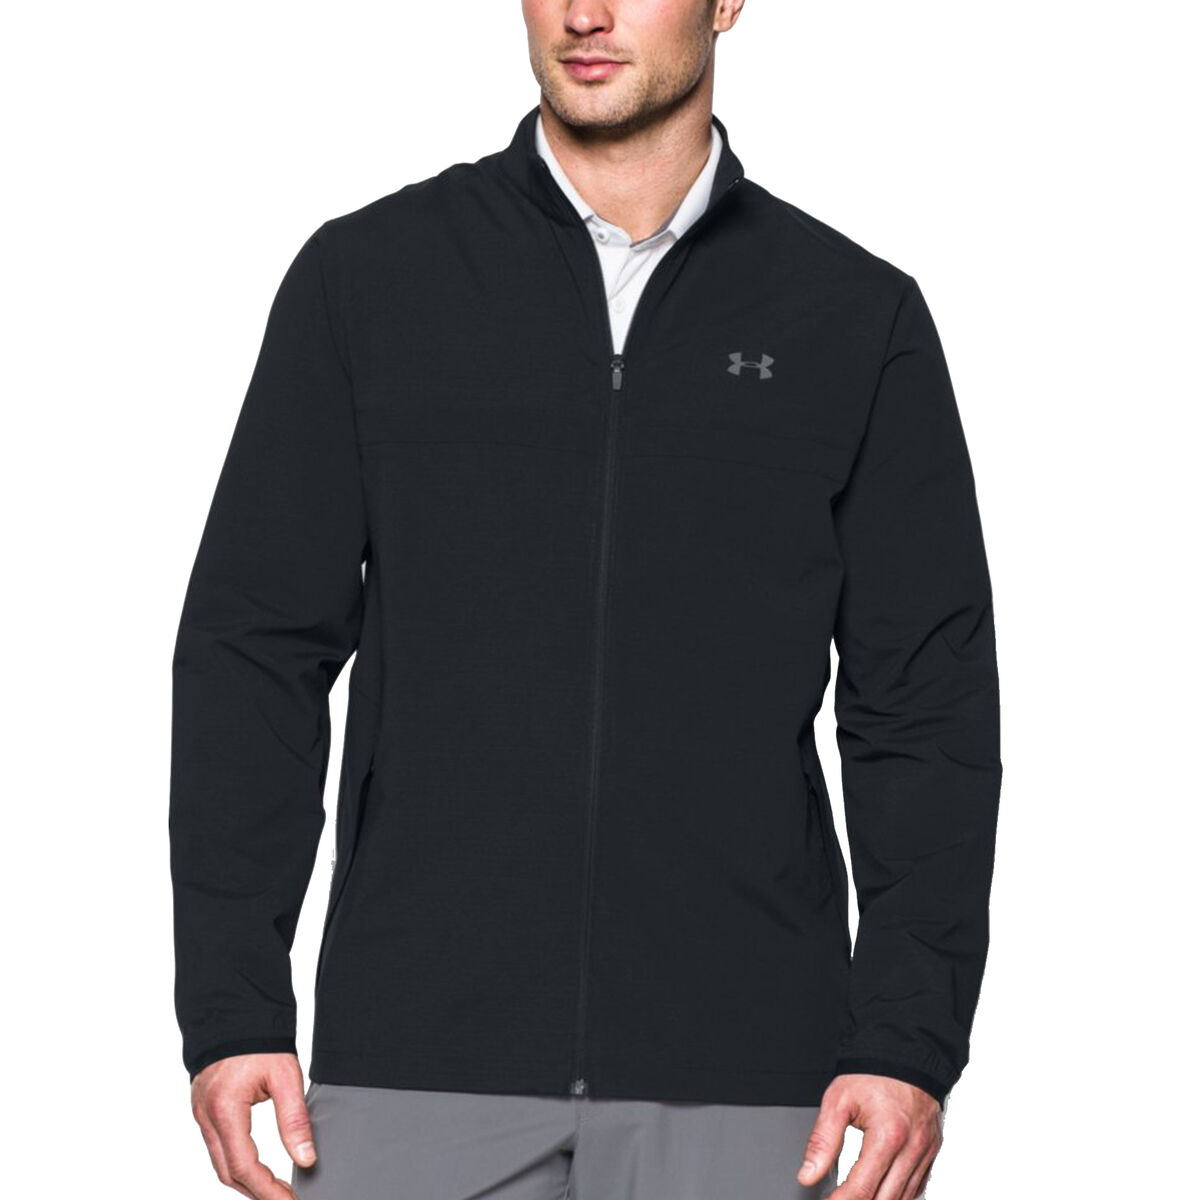 5eefadebd4dbbd Tag Under Armour Mens Storm Windstrike Full Zip Golf Jacket — waldon ...